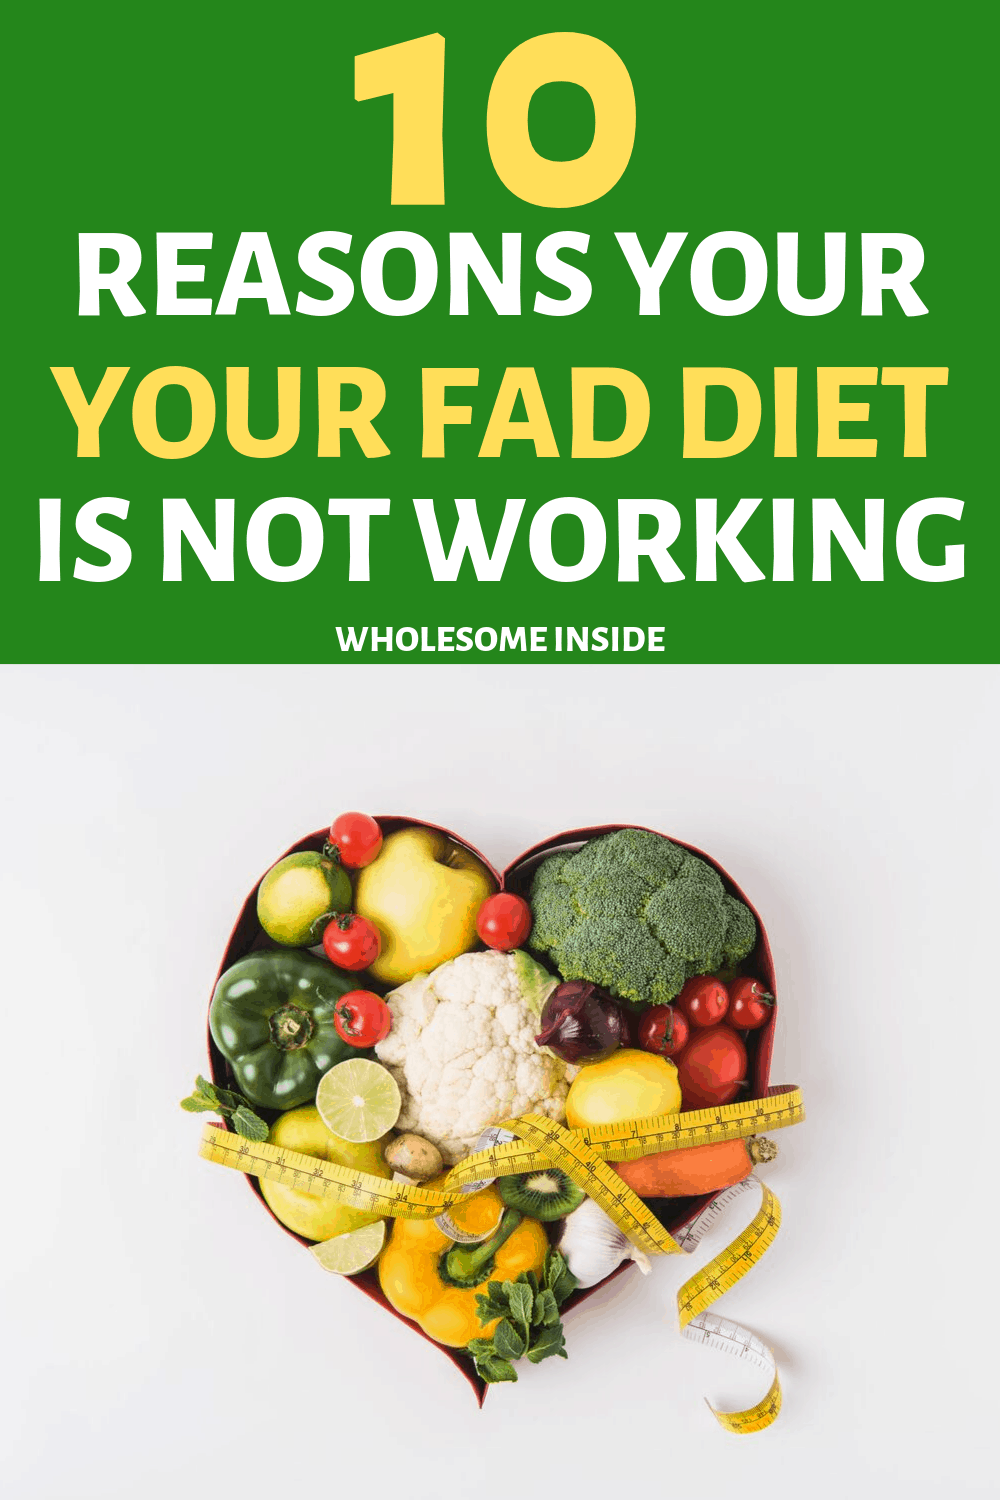 Reasons why your Fad diet isnt working.